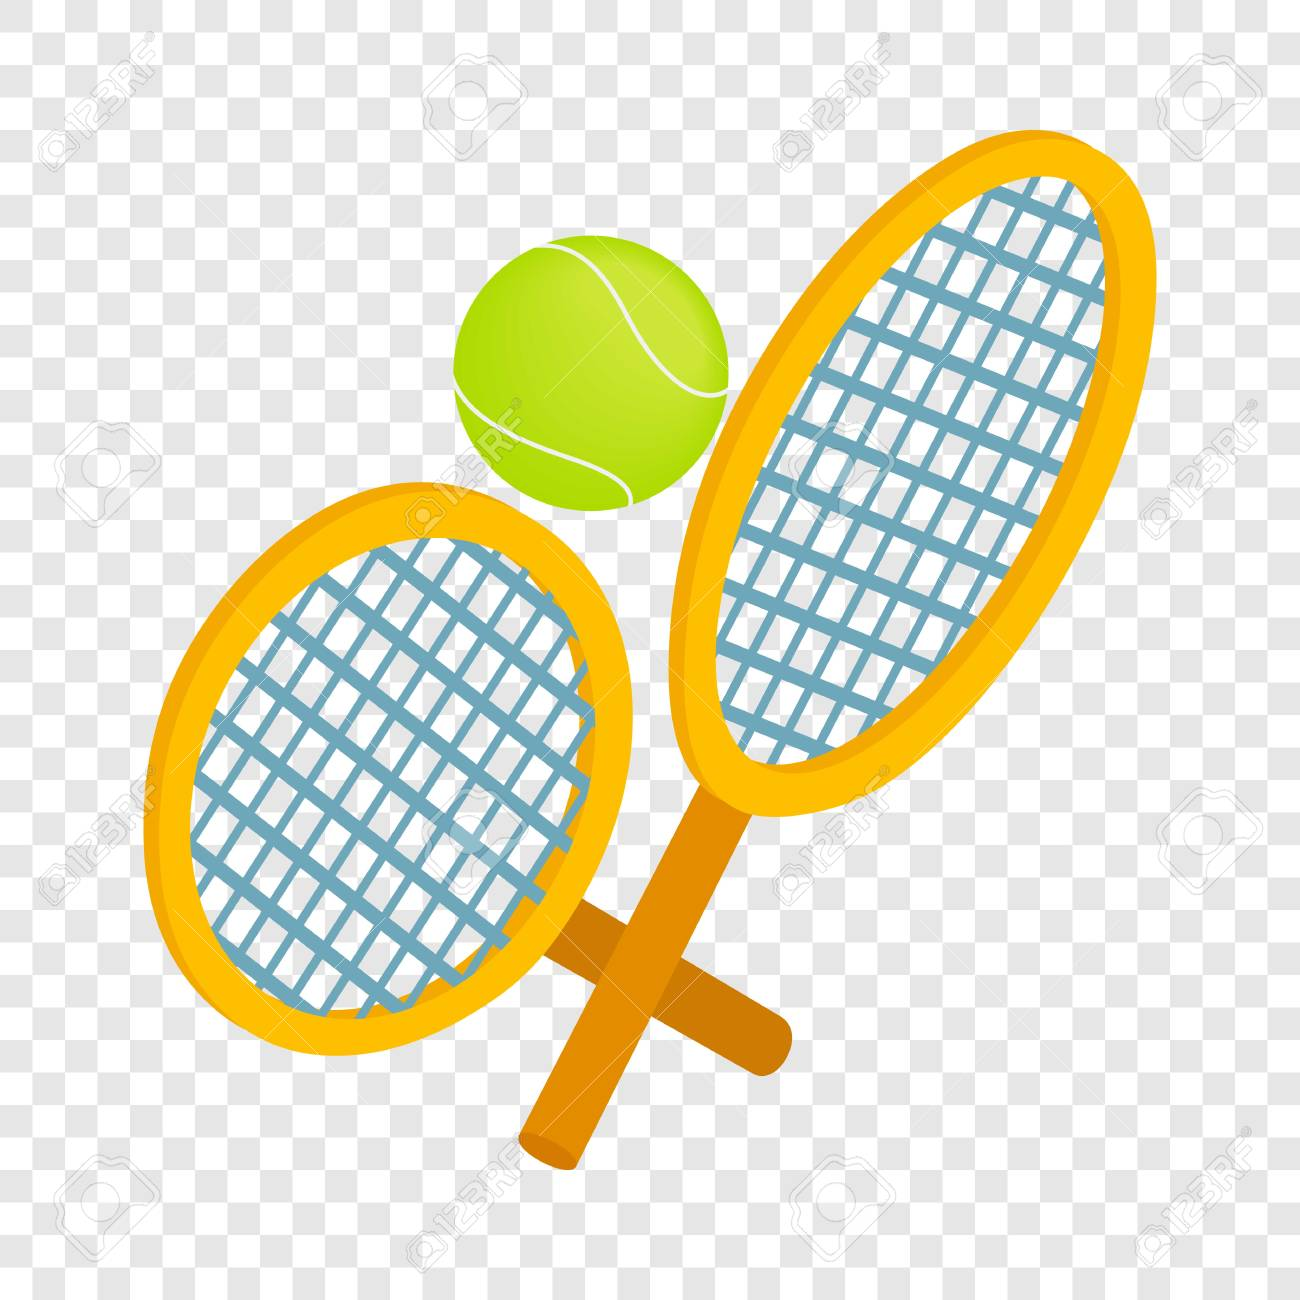 Tennis Rackets With Ball Isometric Icon 3d On A Transparent Background Royalty Free Cliparts Vectors And Stock Illustration Image 73223764